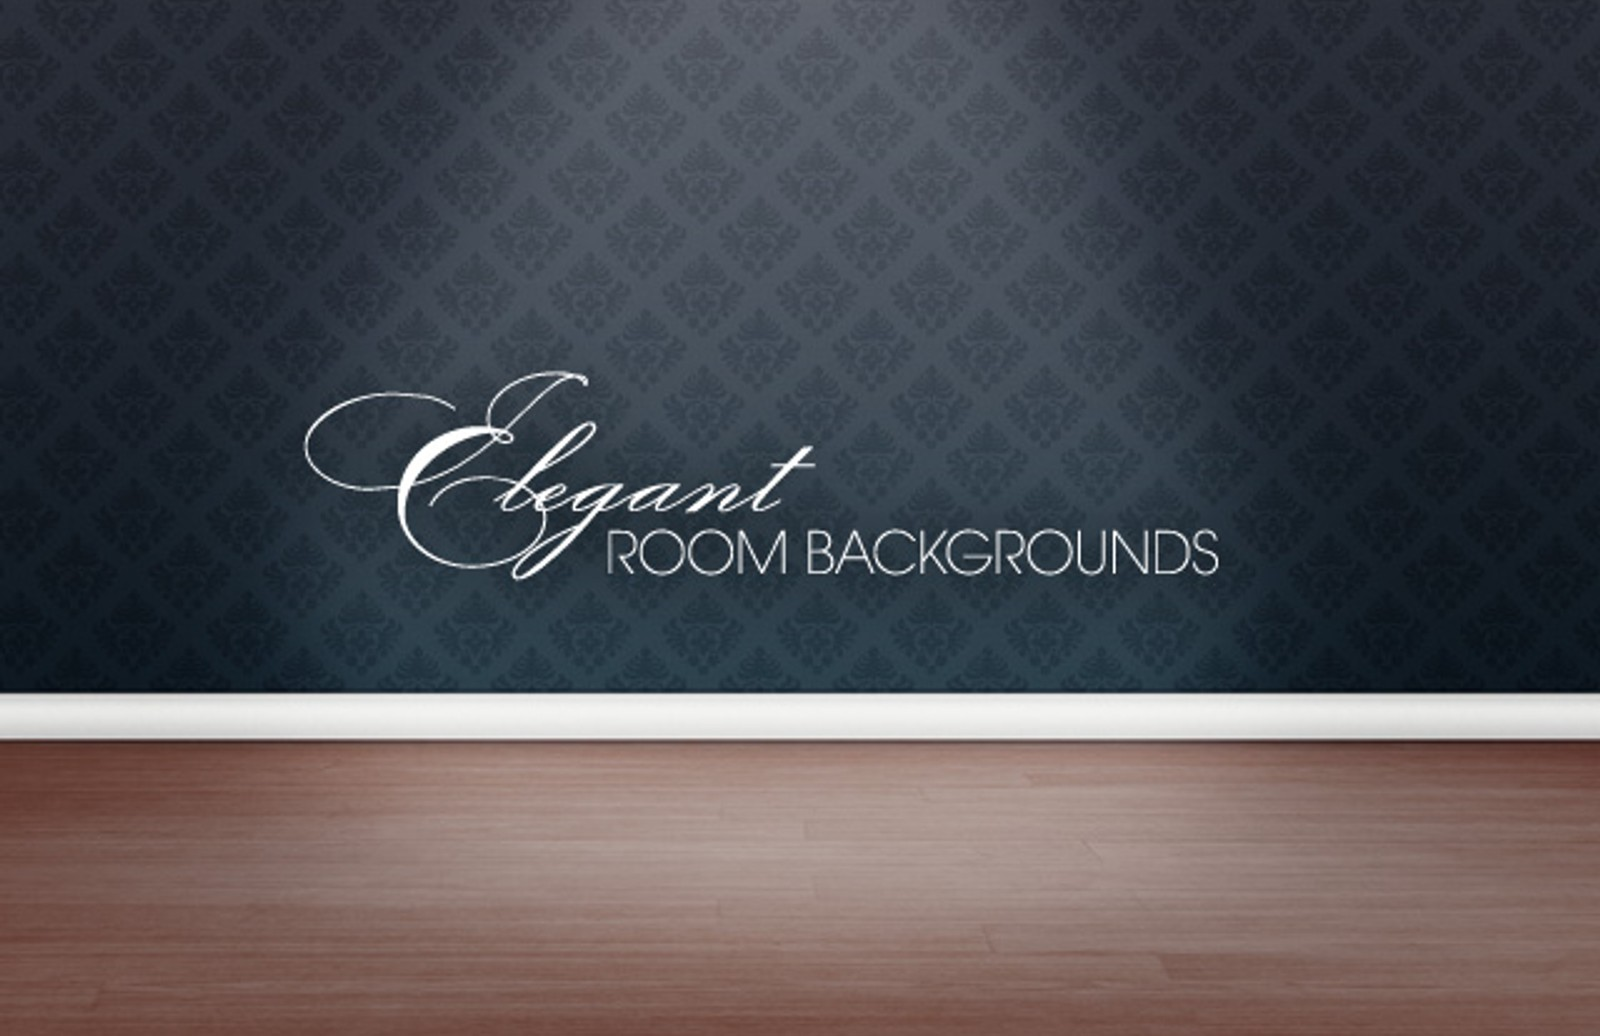 Elegant  Room  Backgrounds  Preview1